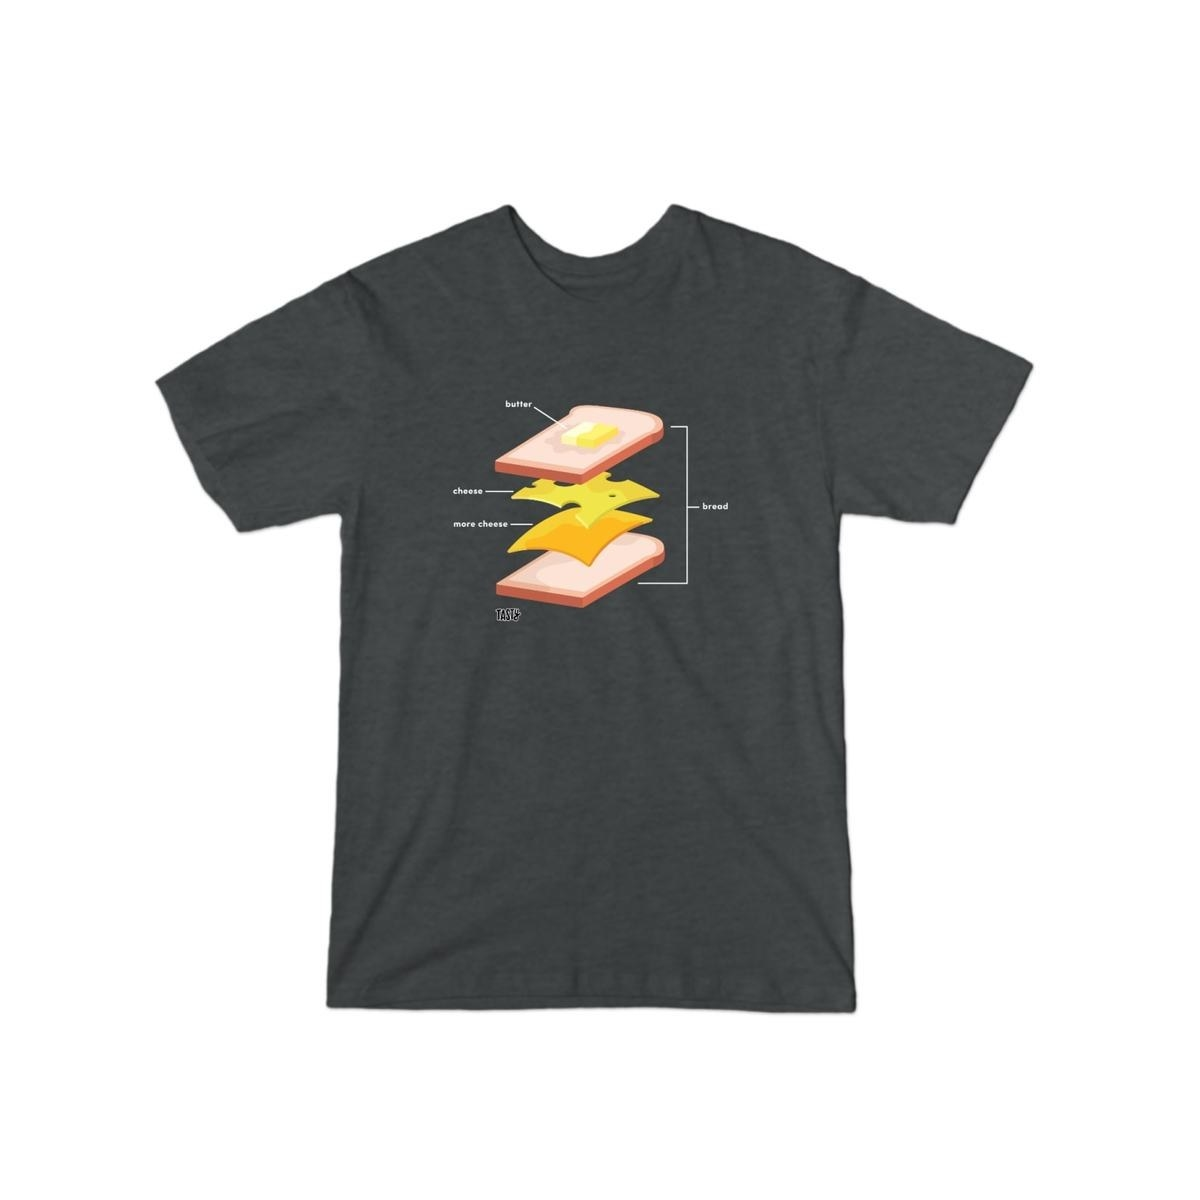 a gray t-shirt with a diagram of how to make a grilled cheese on it